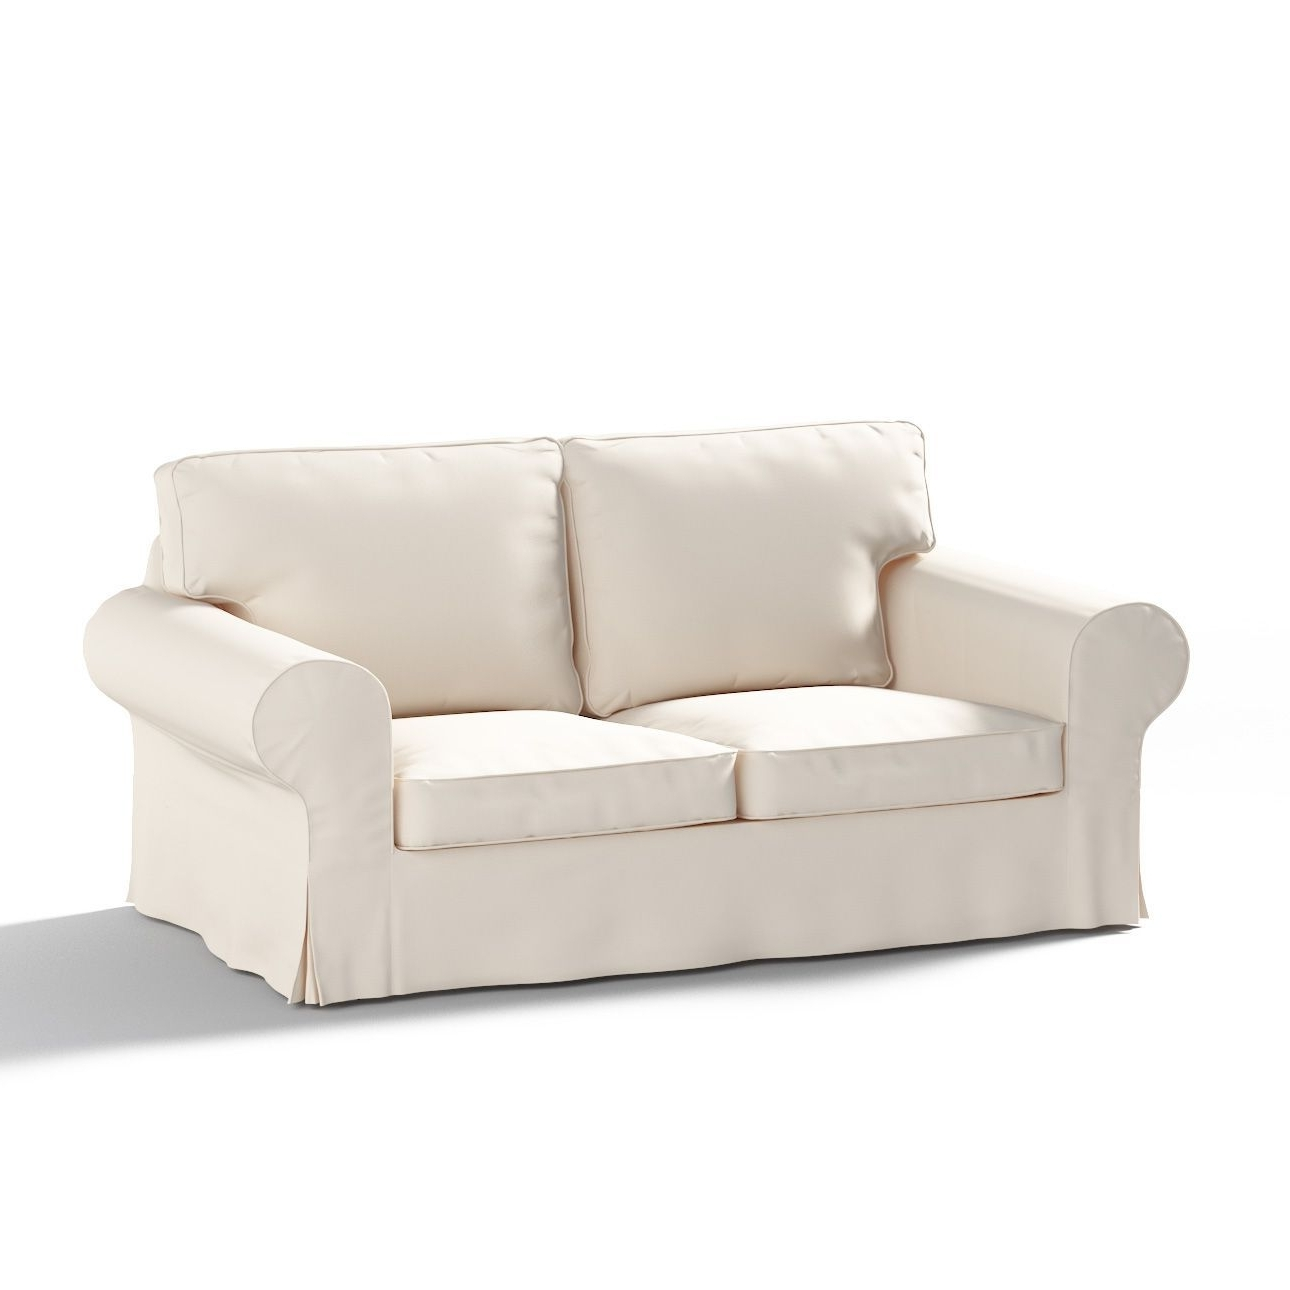 Home Reserve Sectional Review Sofas With Removable Washable Covers In Widely Used Sofas With Washable Covers (View 9 of 20)